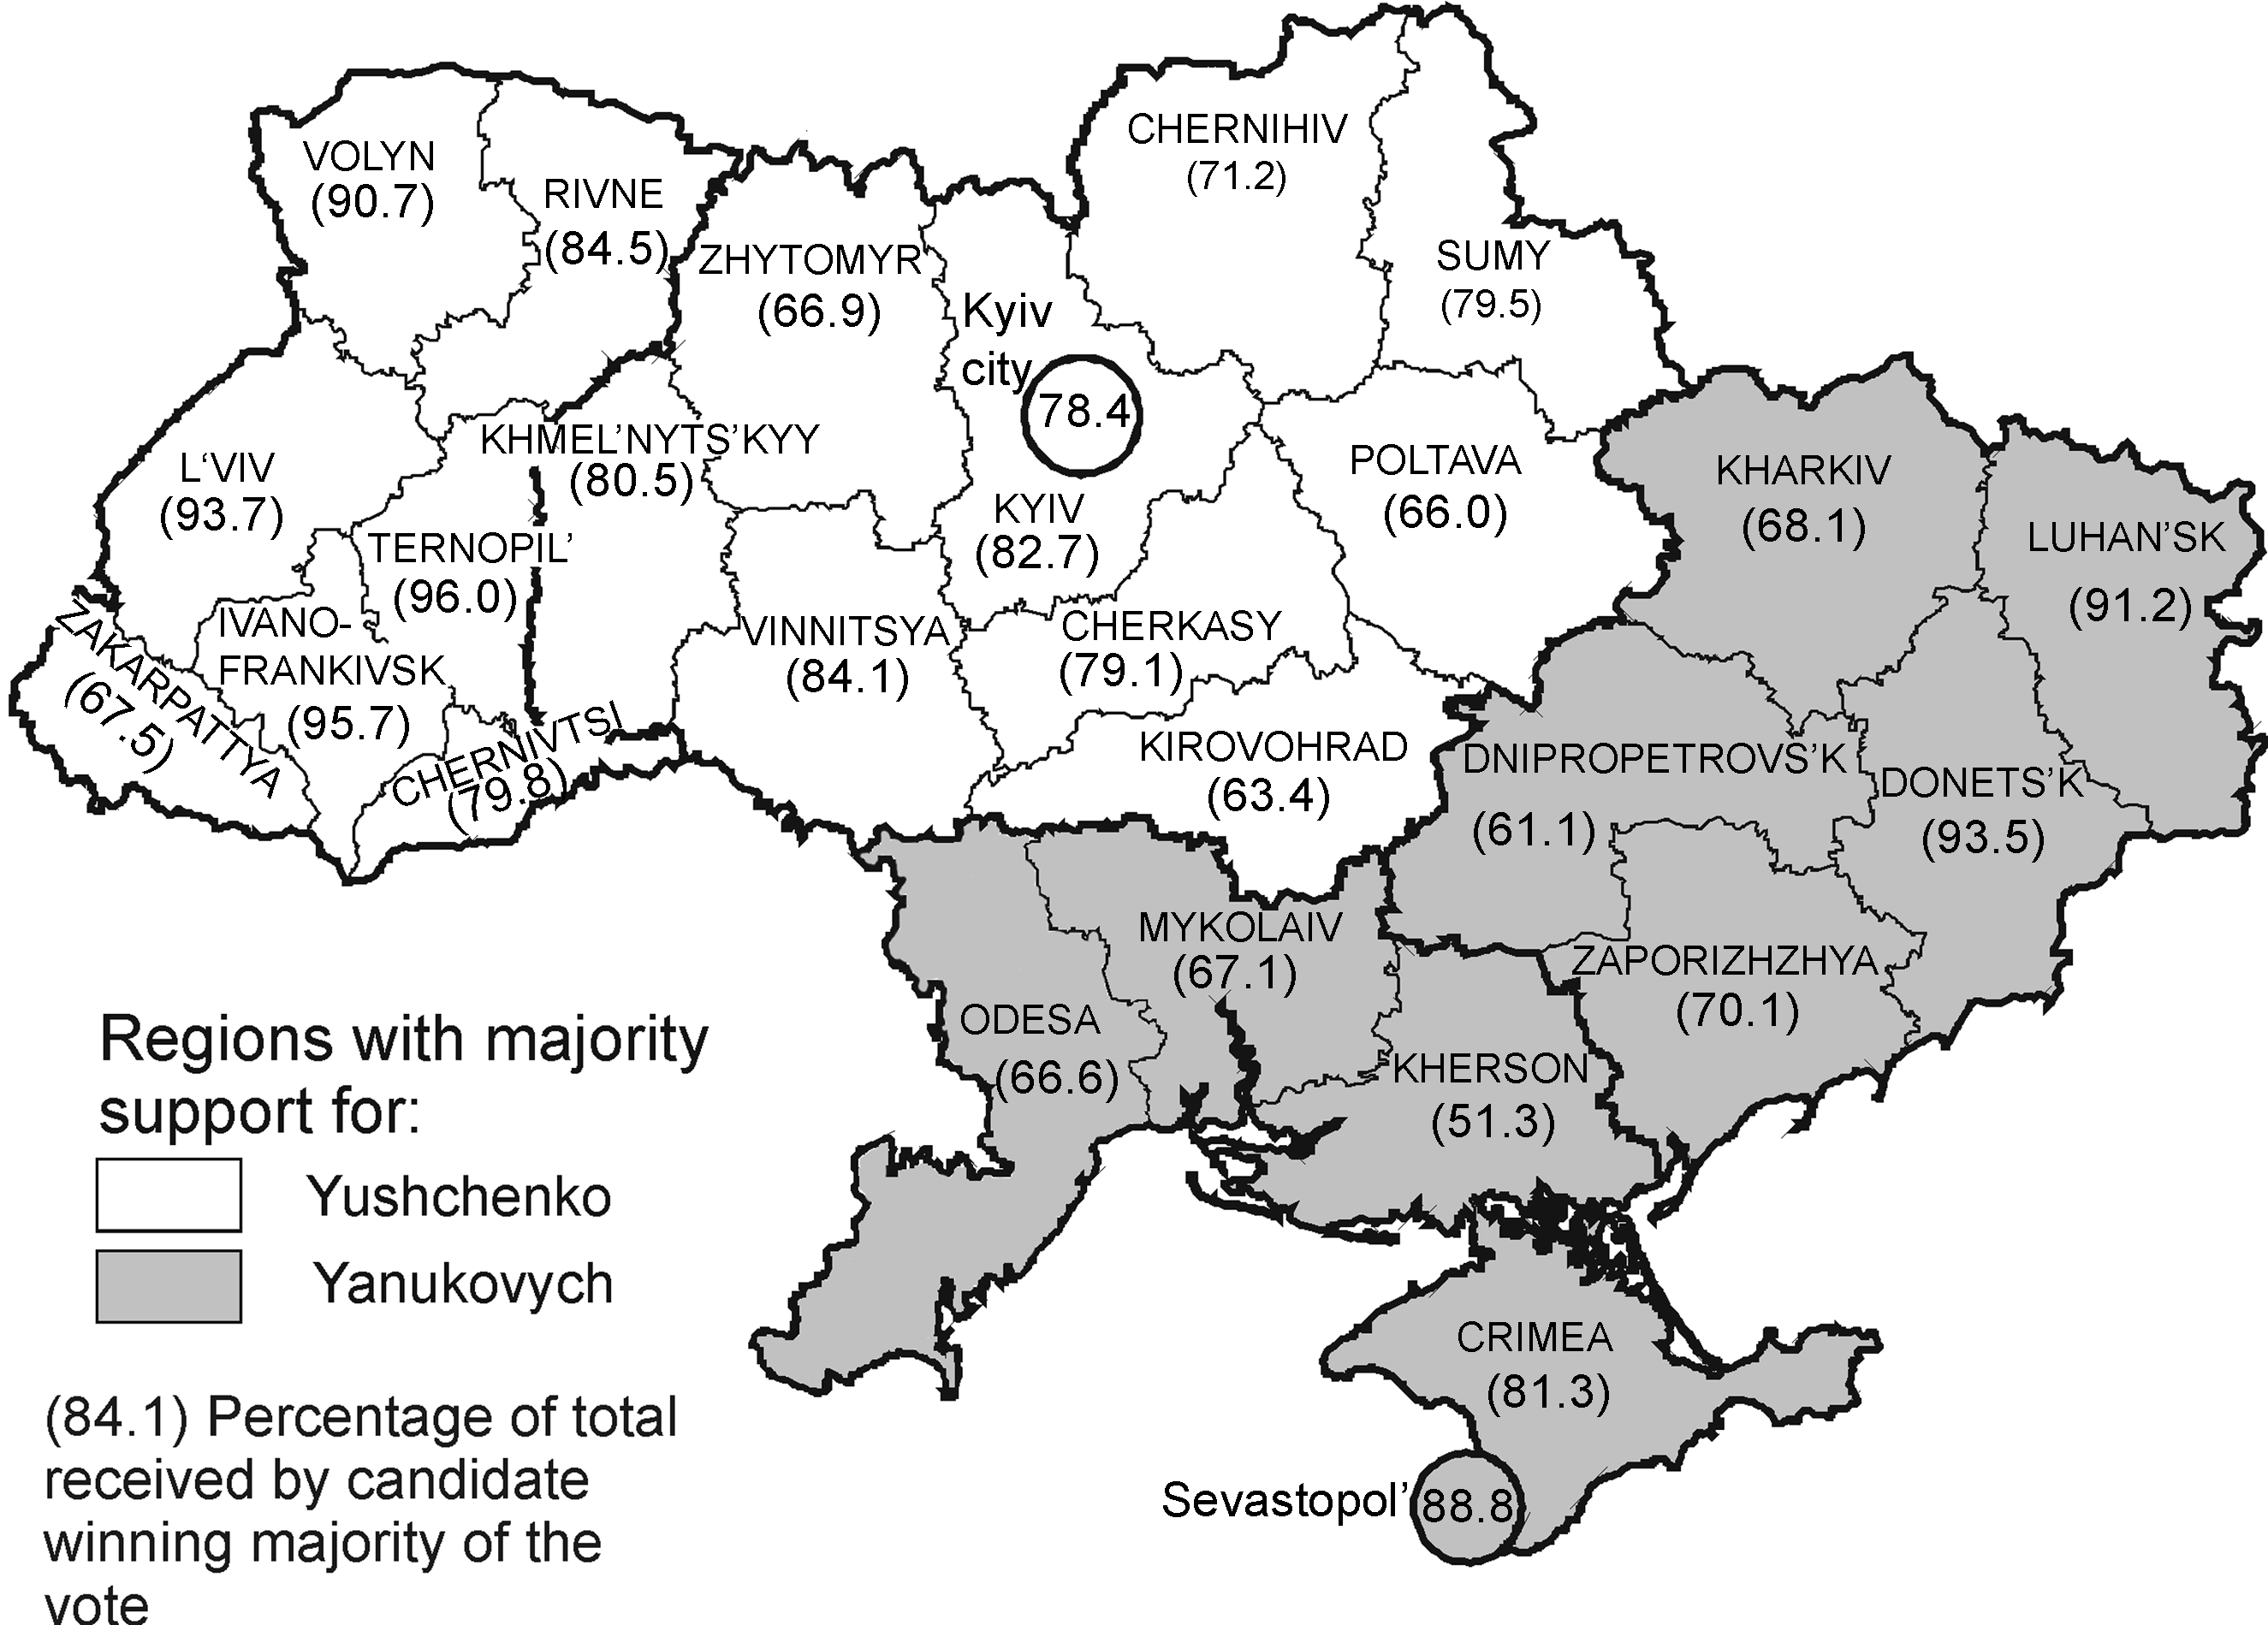 ANDERS ÅSLUND 331 Fig 1. Maps showing regions in which Yushchenko and Yanukovych won majority of the vote in the December 26, 2004 second runoff election.